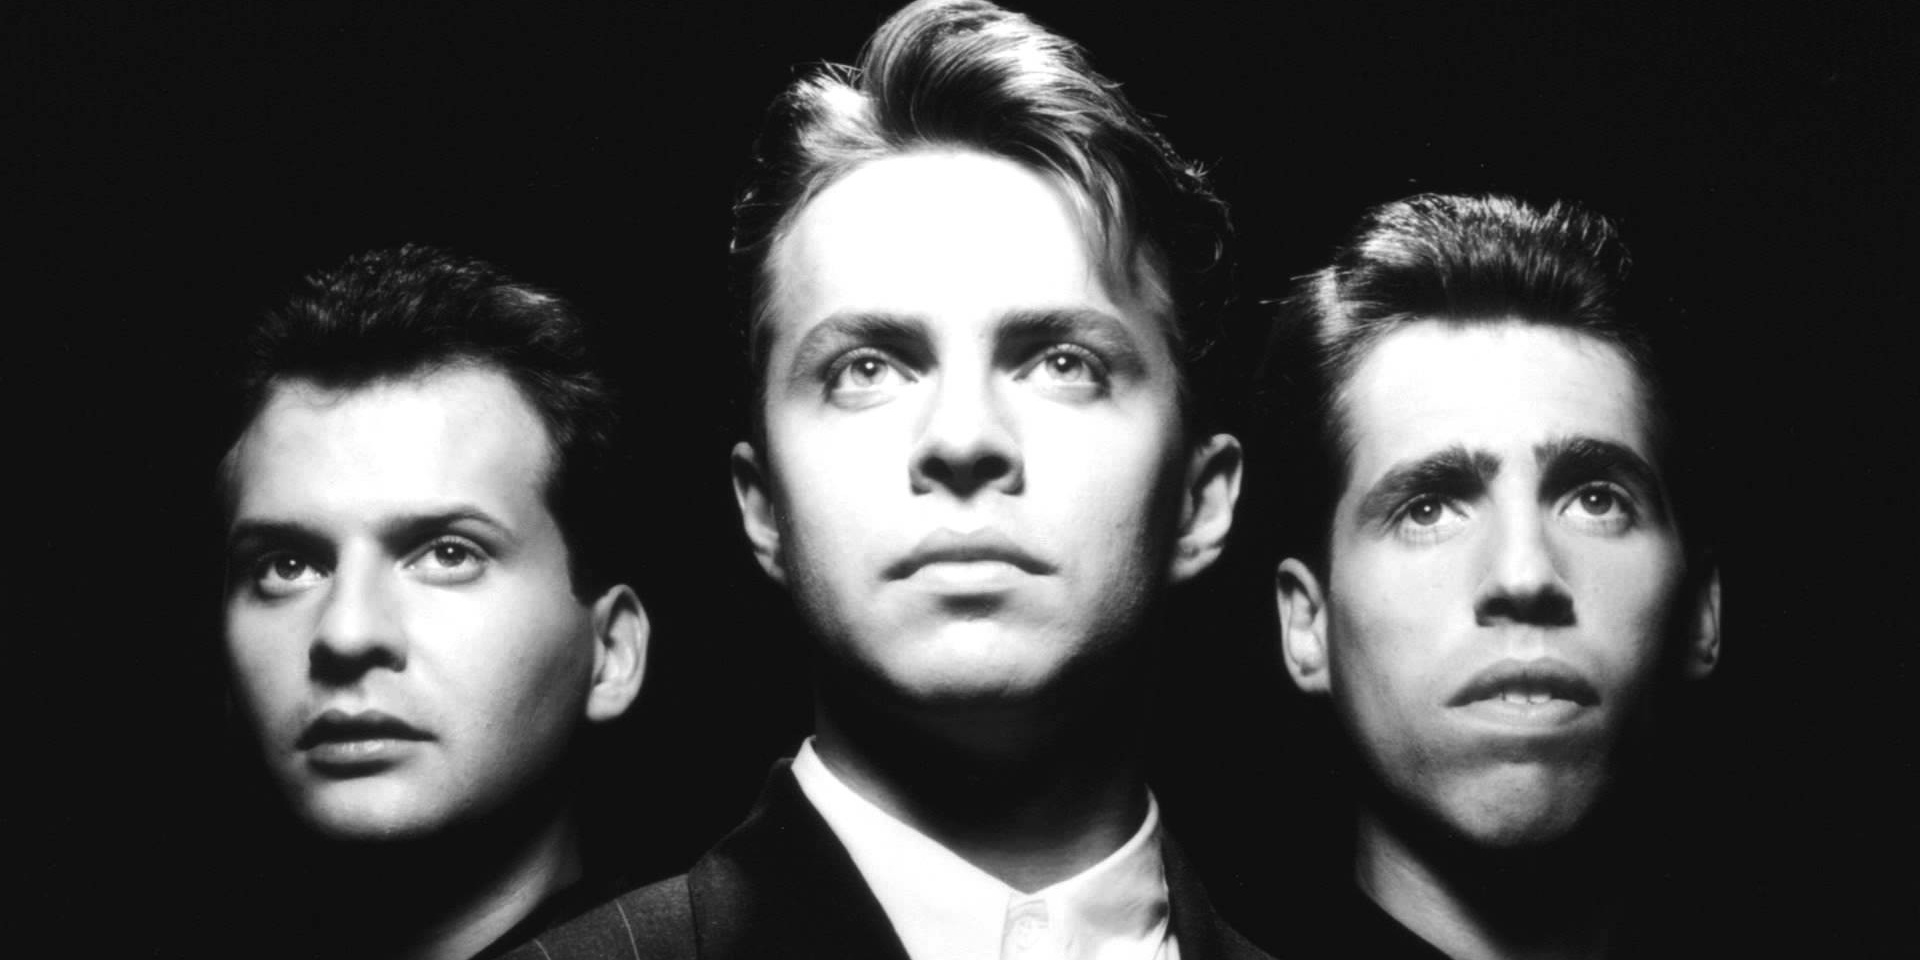 Johnny Hates Jazz to perform intimate 30th anniversary show in Singapore